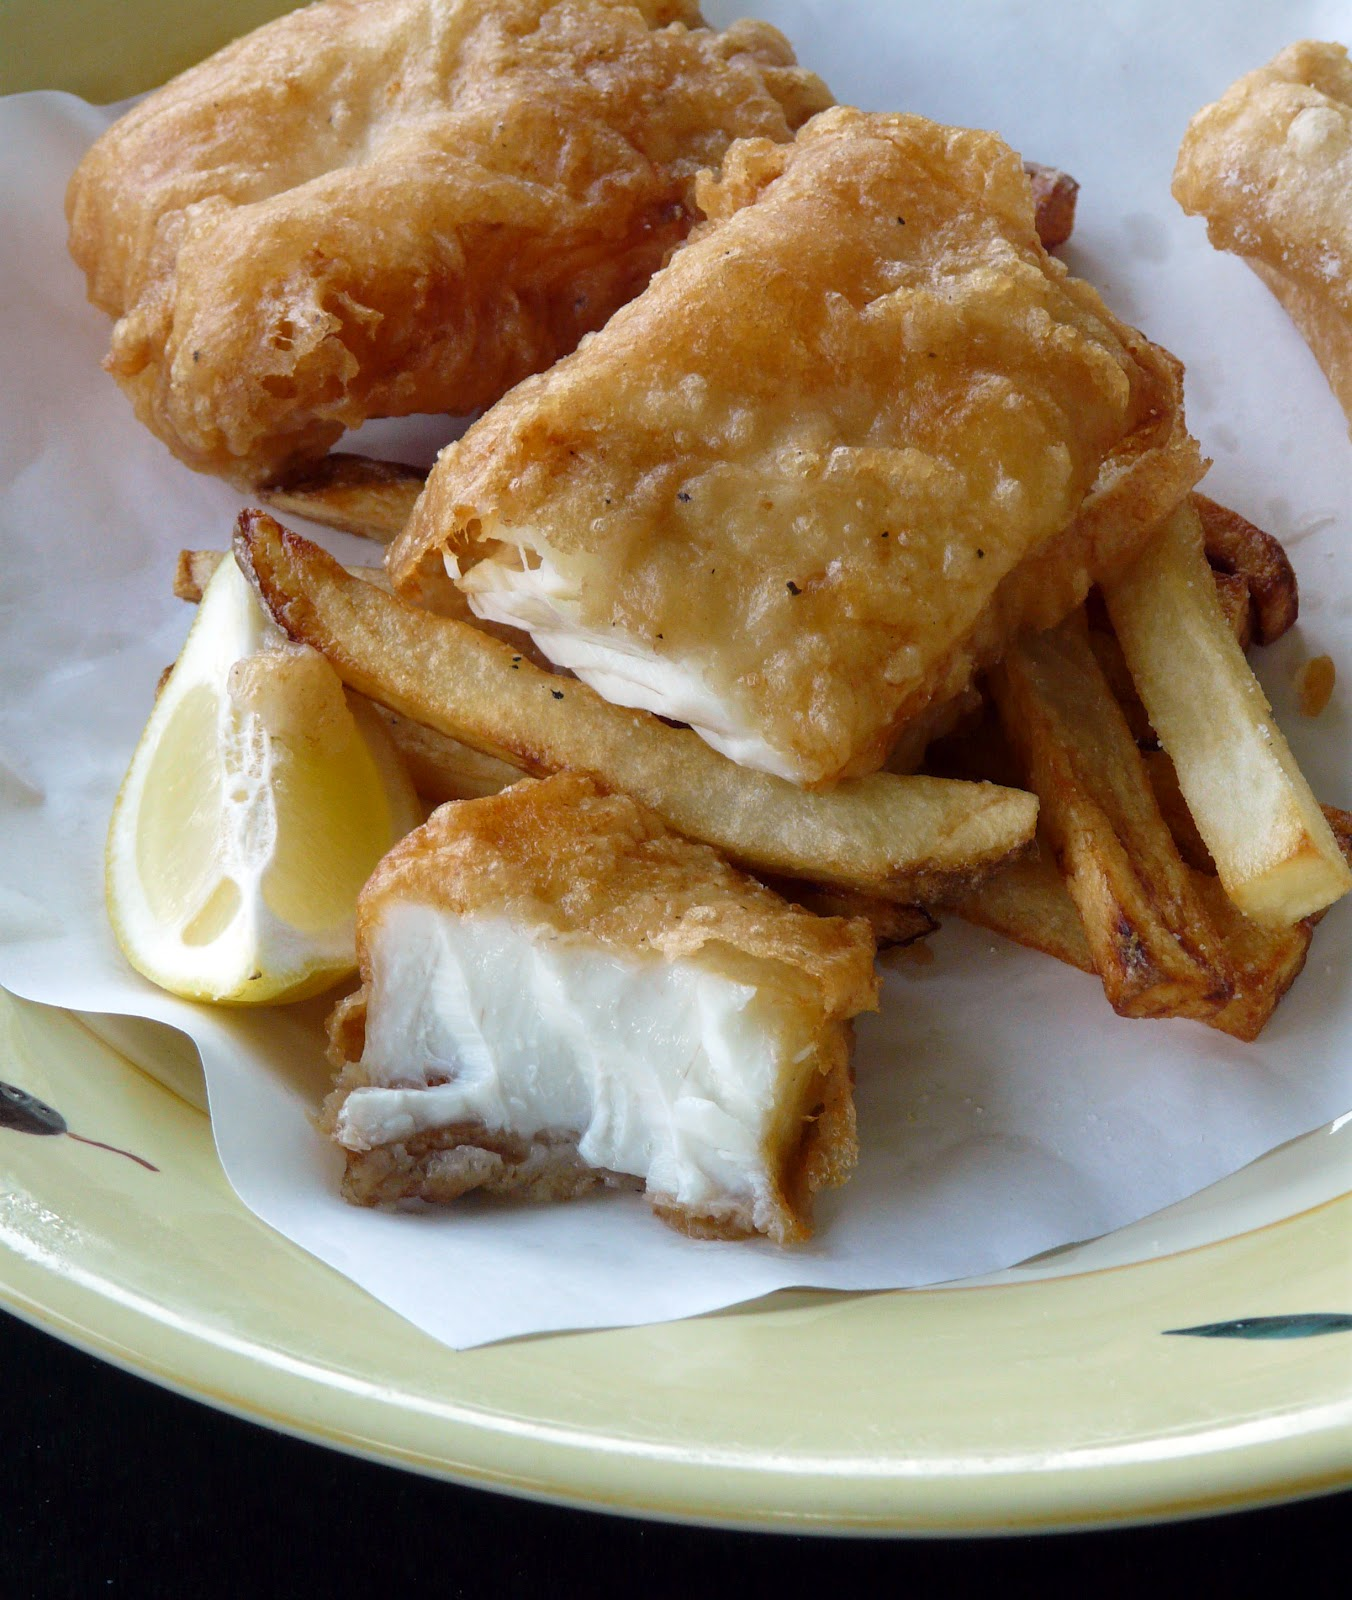 Thibeault's Table: Halibut Fish and Chips